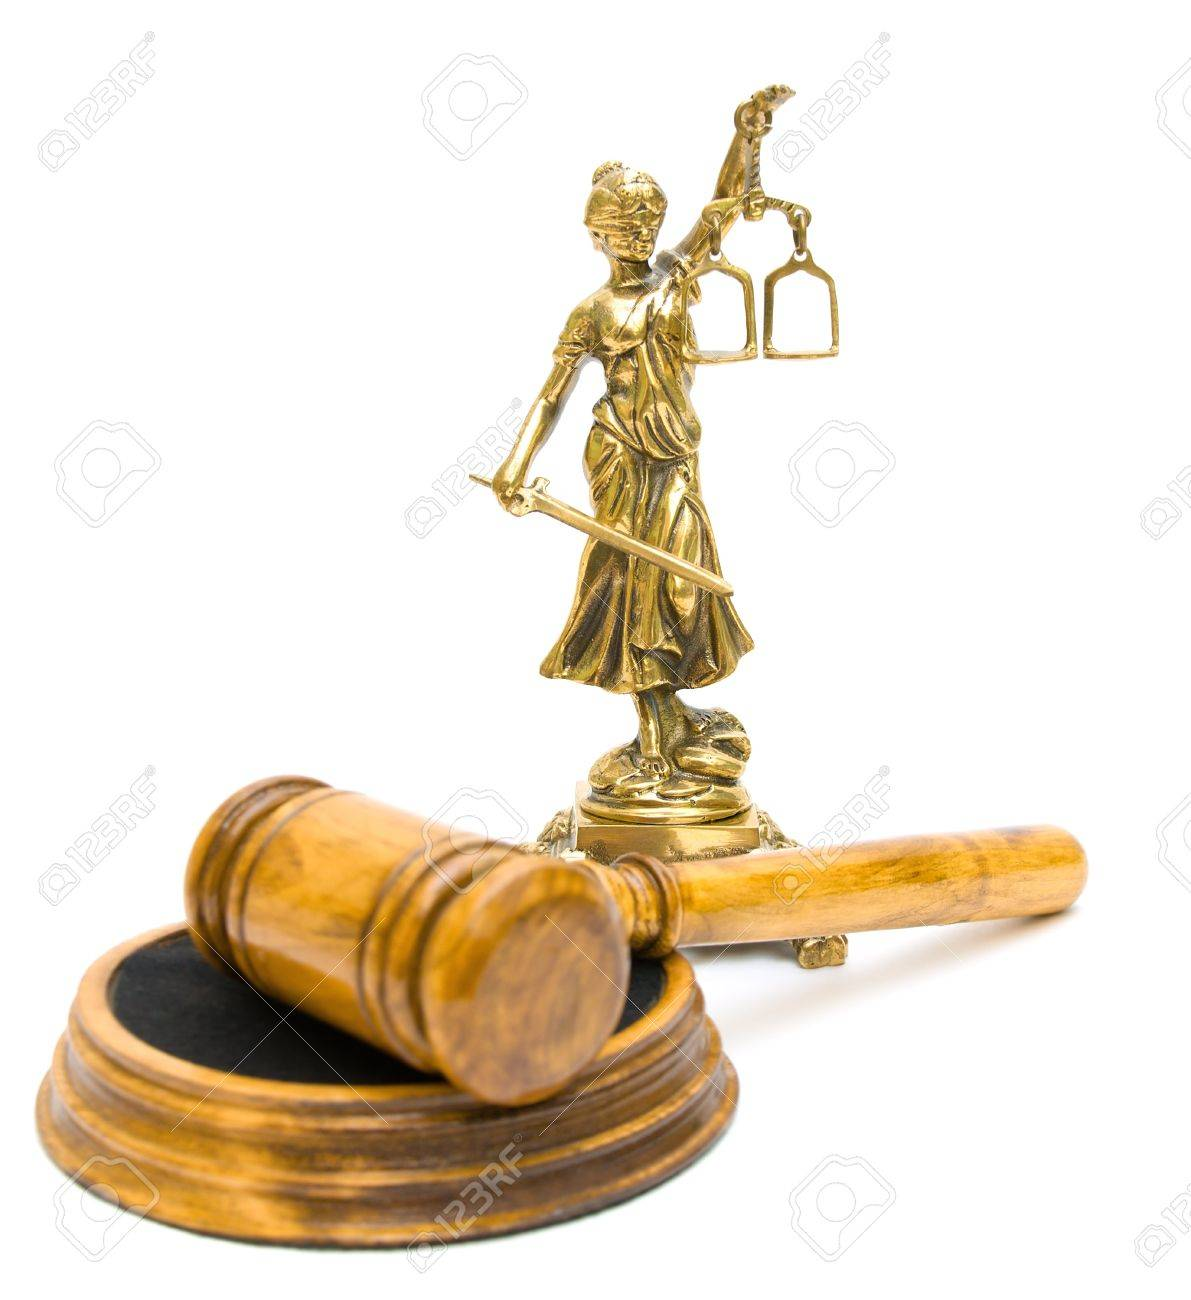 Indian Justice Statue Lady Justice Statue of